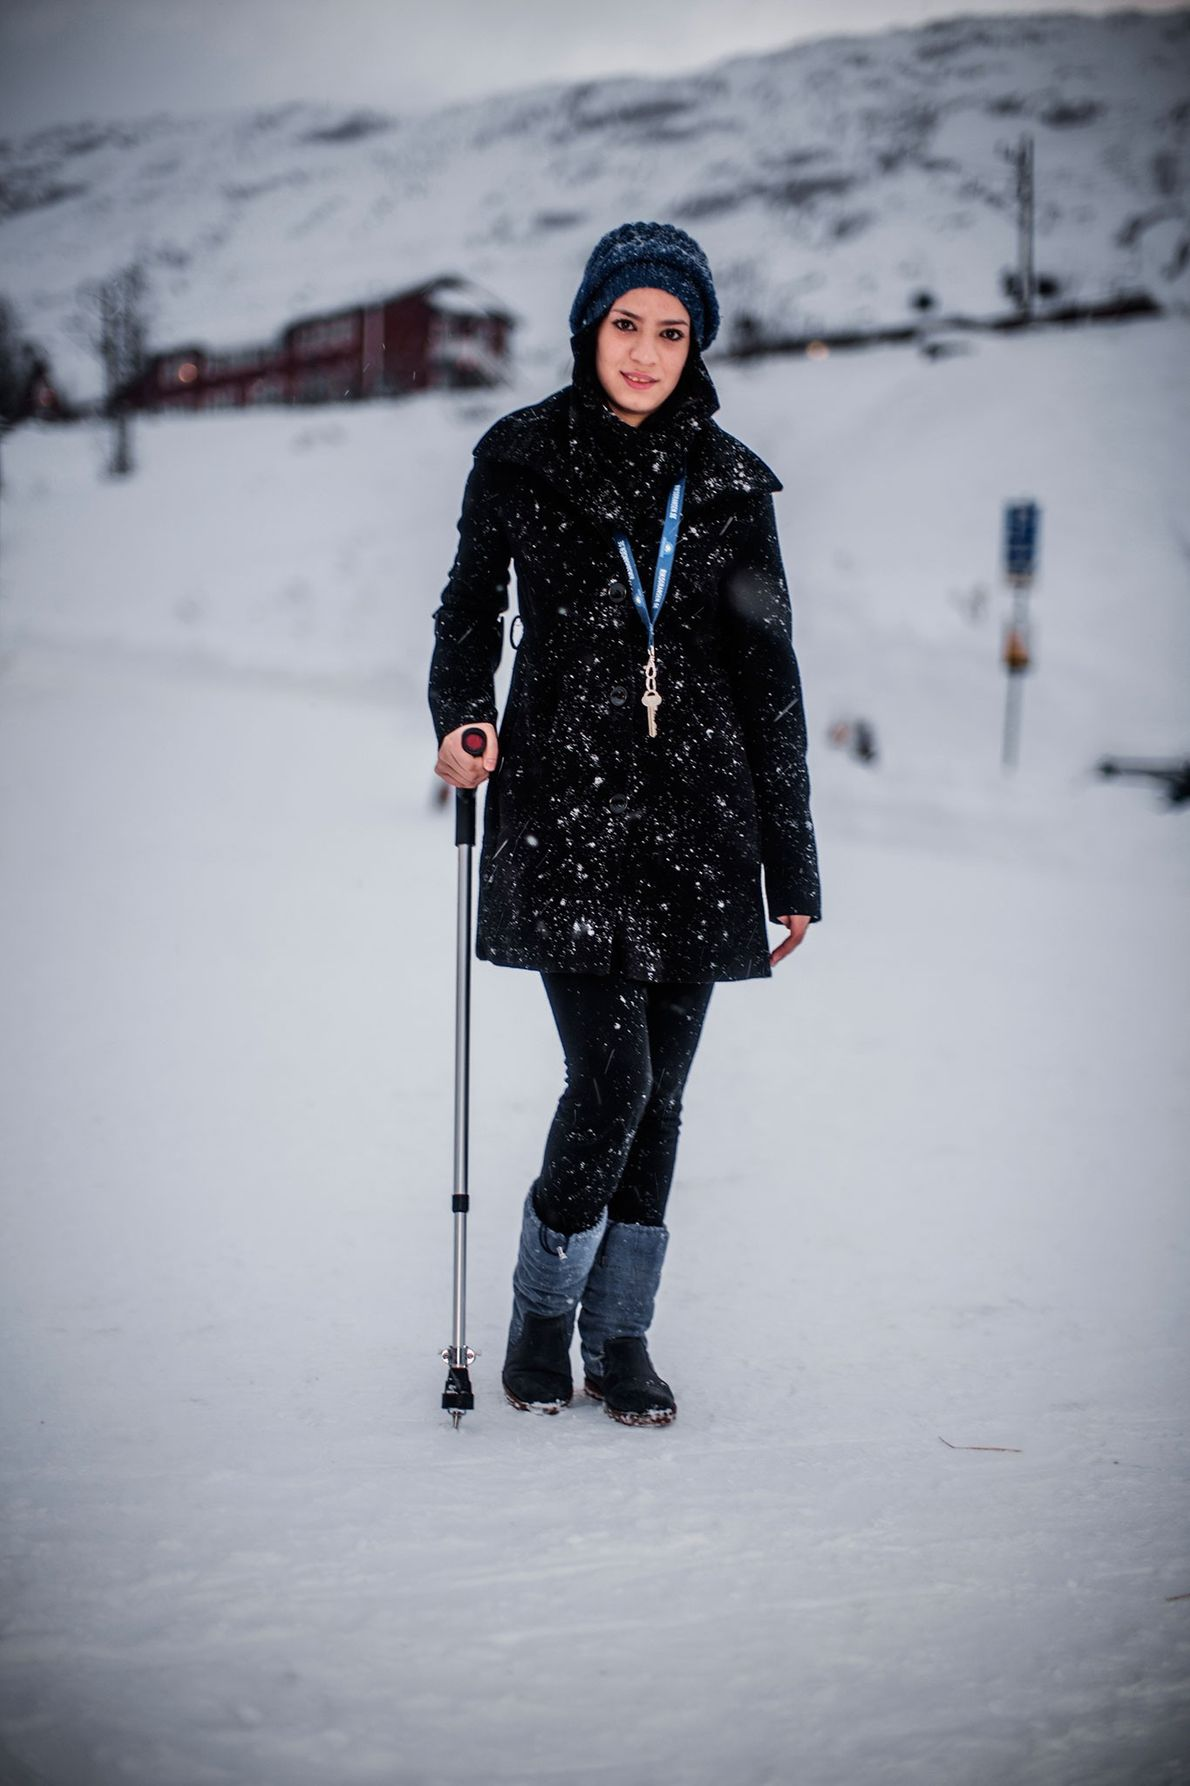 Foto: Roya Hosseini 14 fled with her family to Sweden